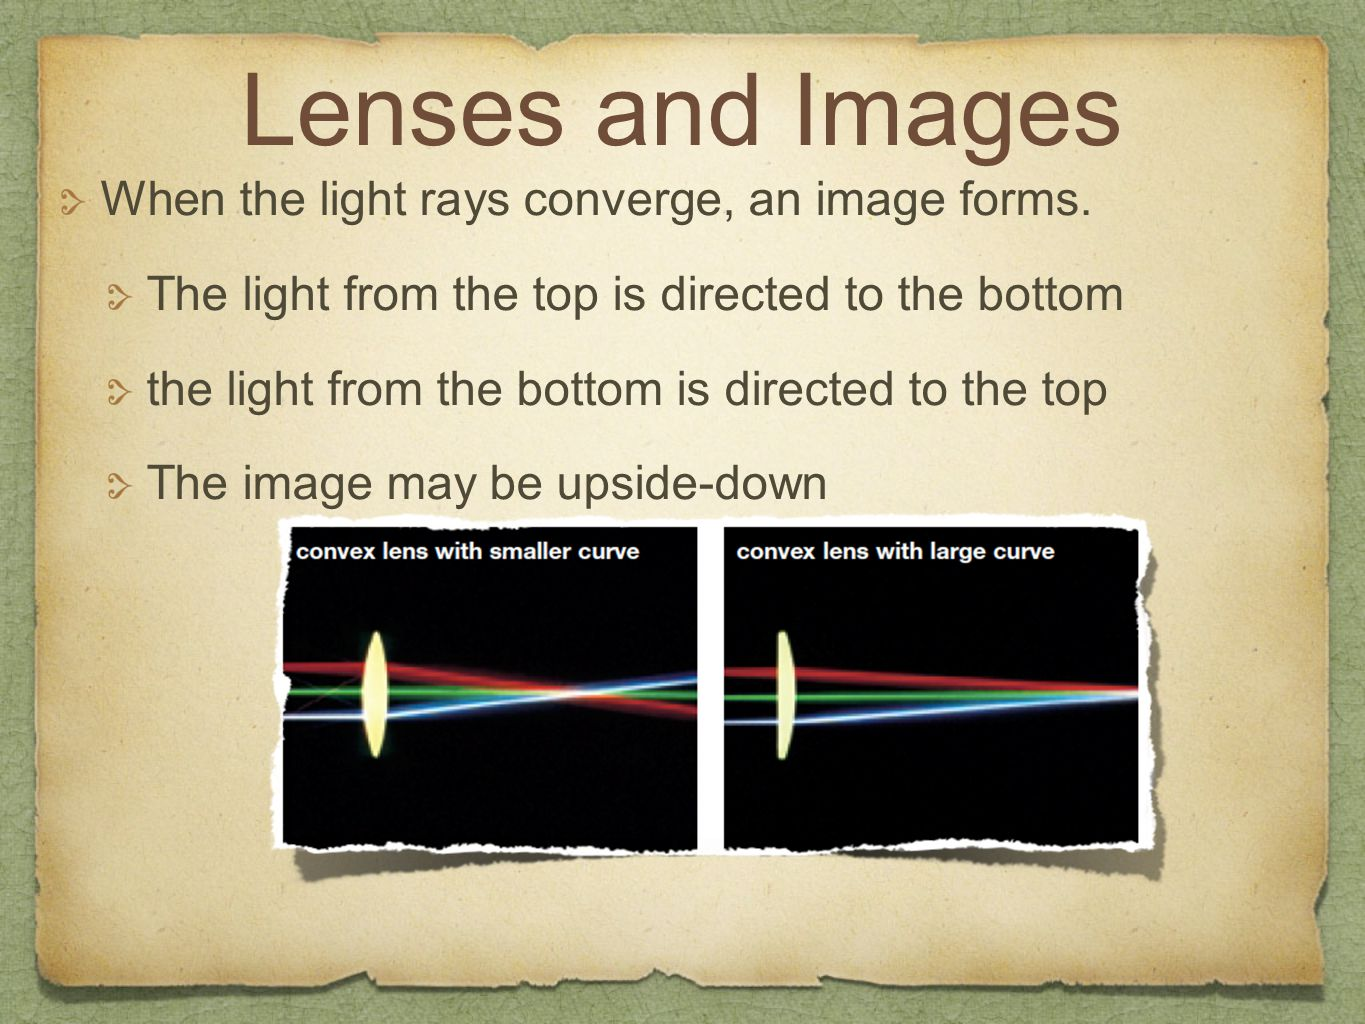 Lenses and Images When the light rays converge, an image forms.